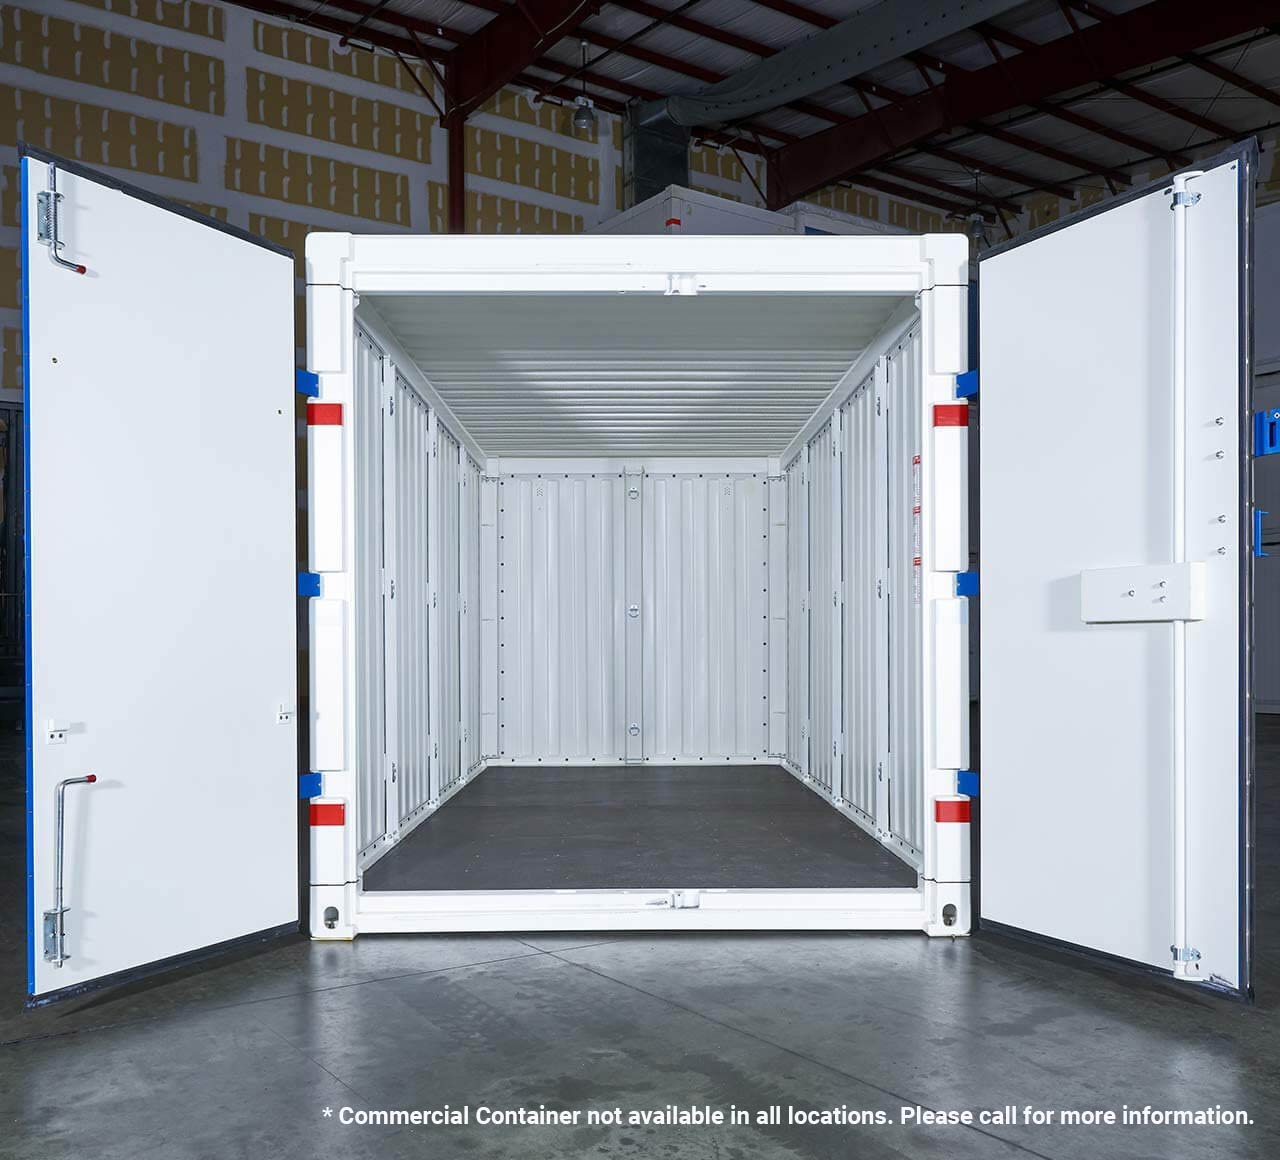 PODS for Business steel commercial container doors open